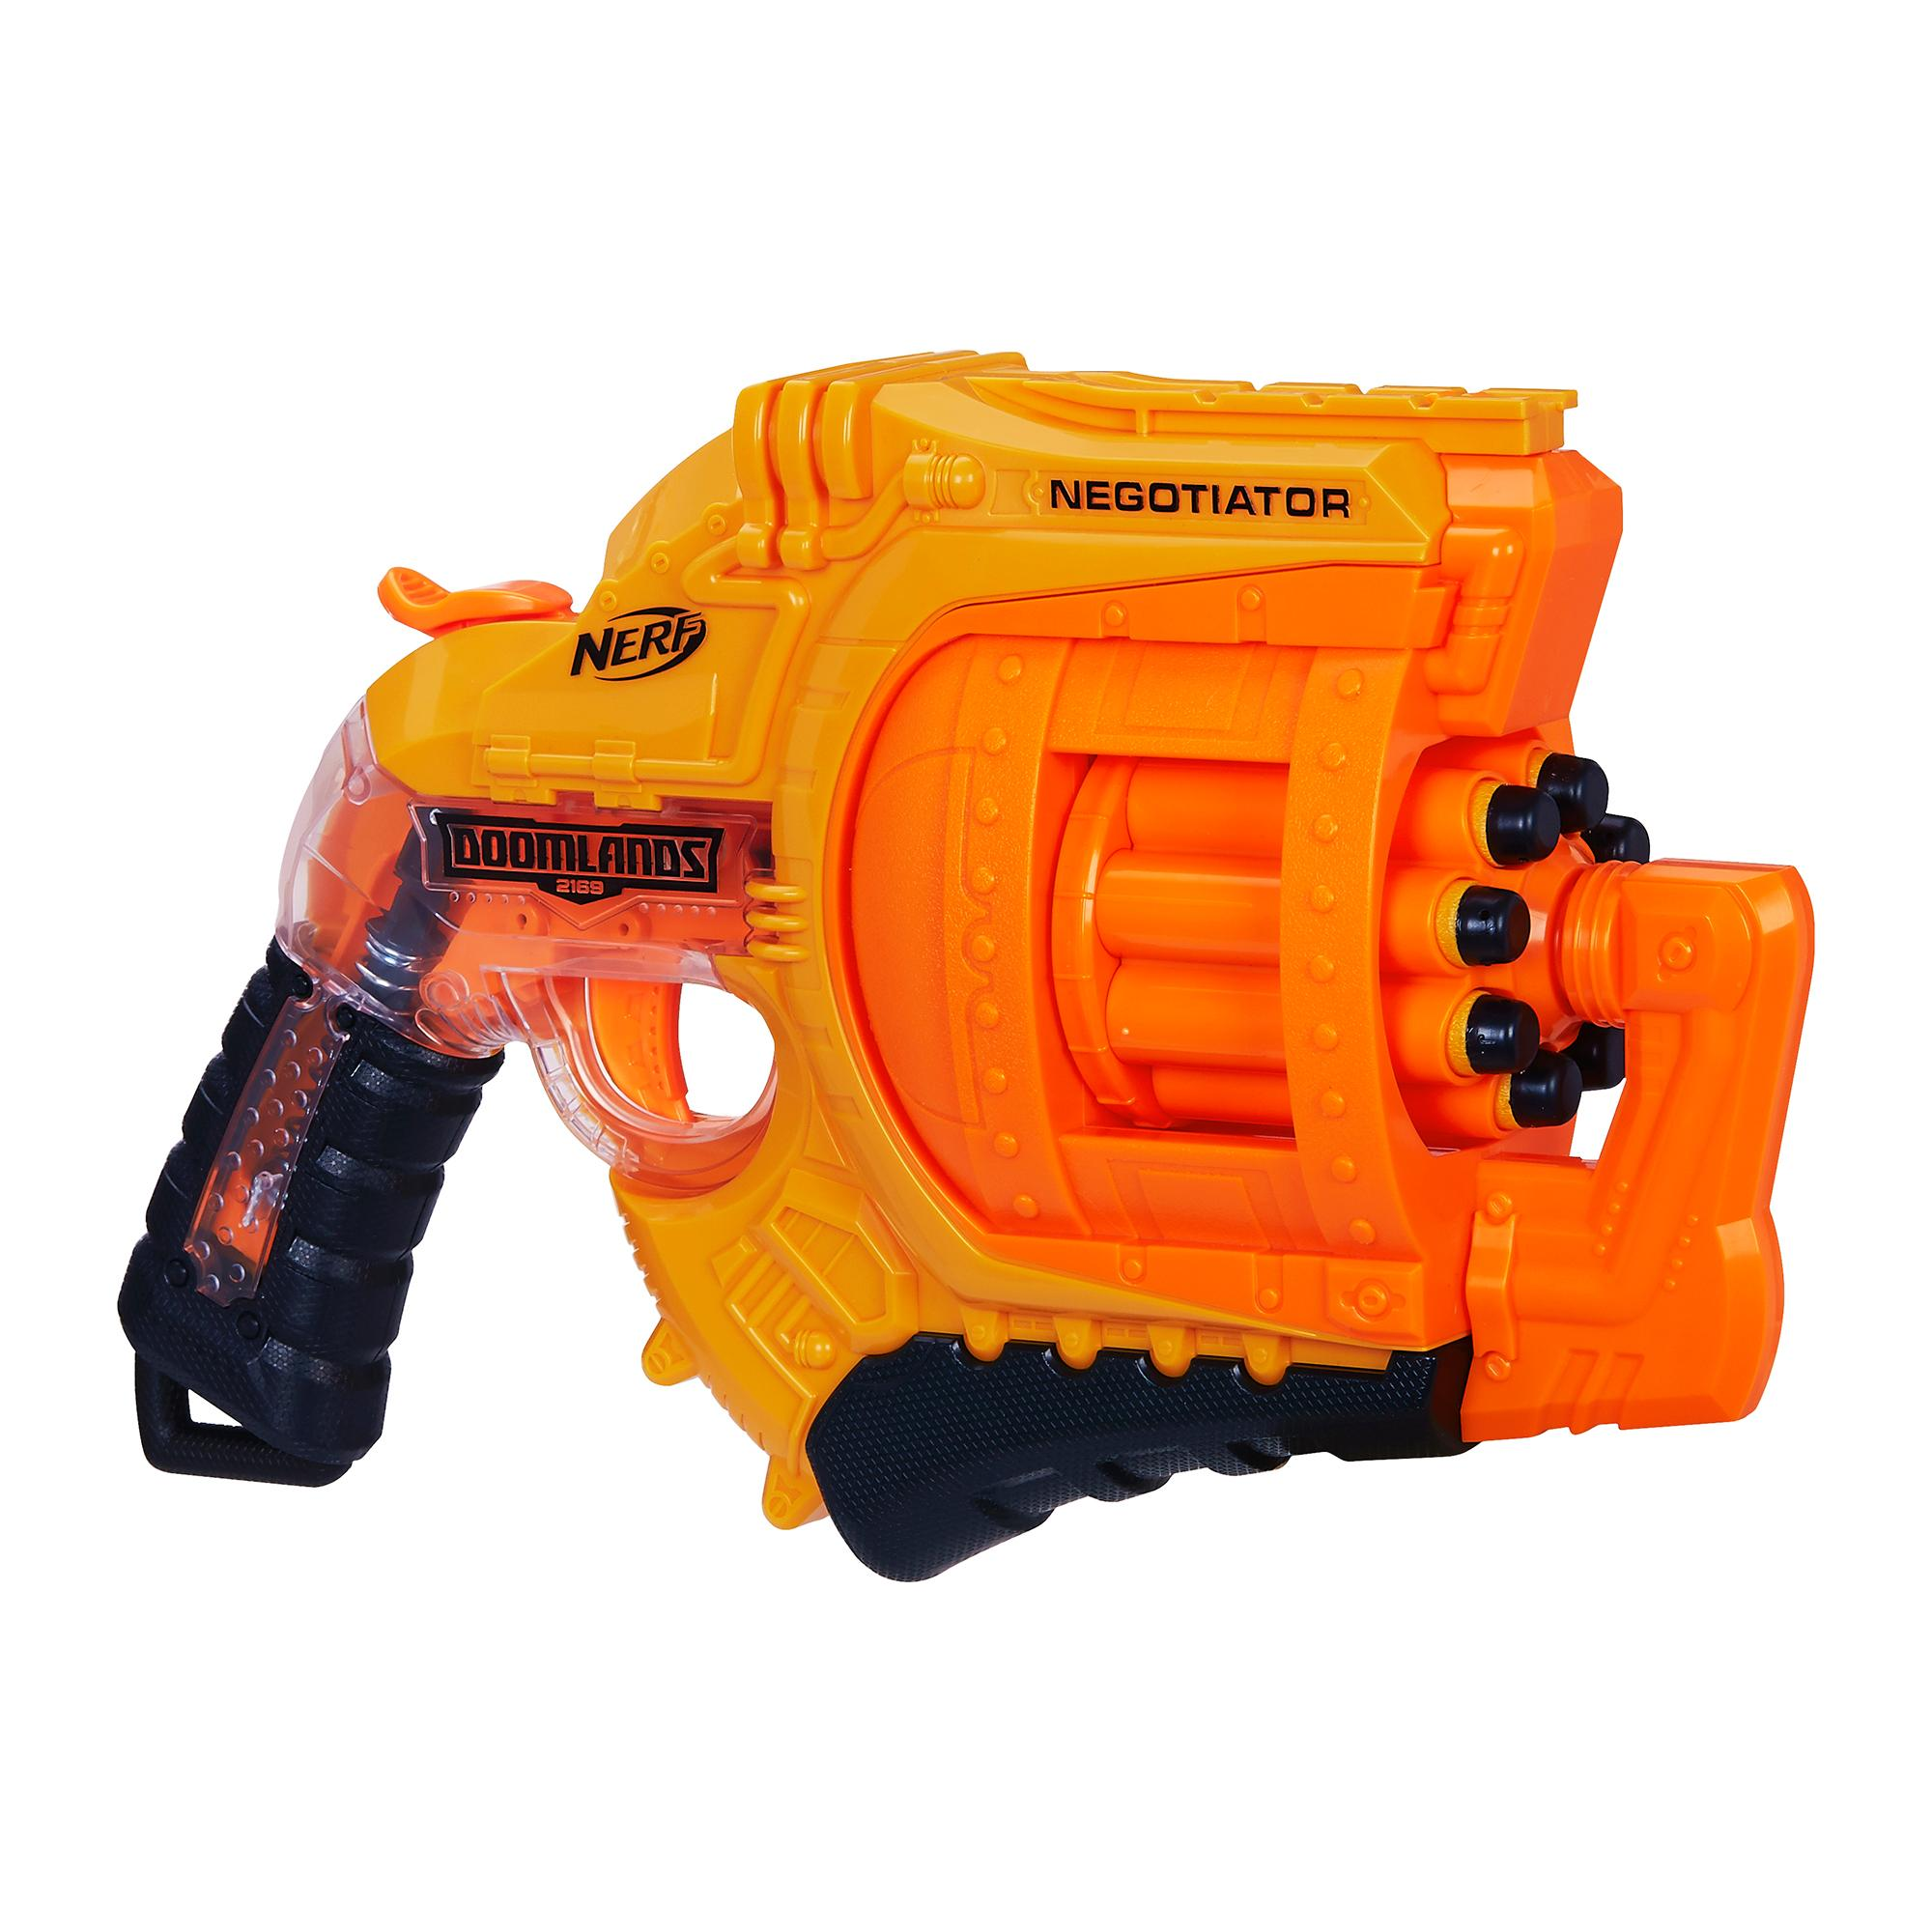 Nerf Doomlands 2169 Negotiator Blaster